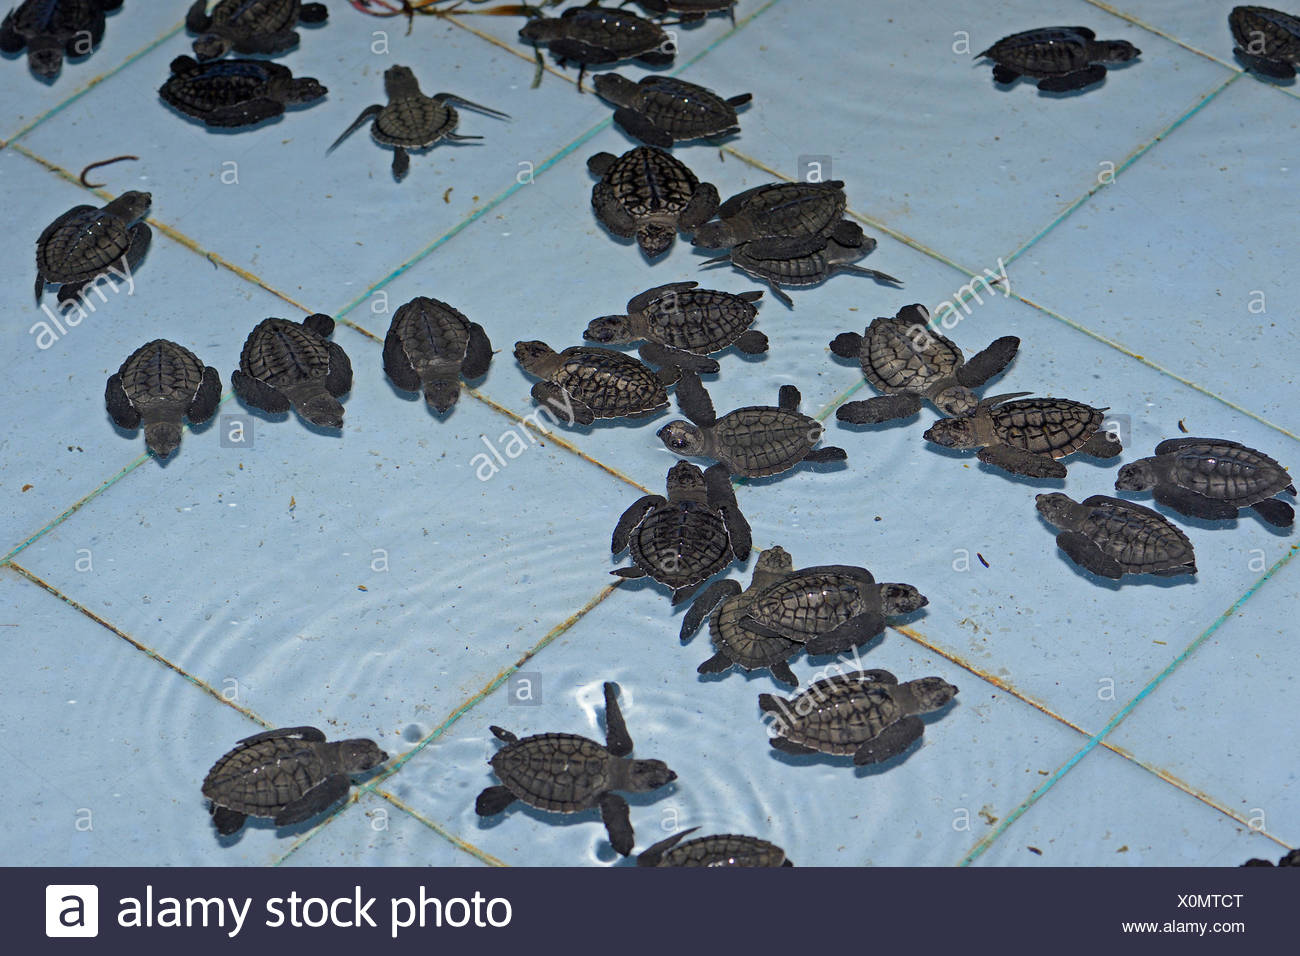 Olive ridley sea turtles (Lepidochelys olivacea) hatchlings, approx. one month, breeding station, Bali, Indonesia Stock Photo